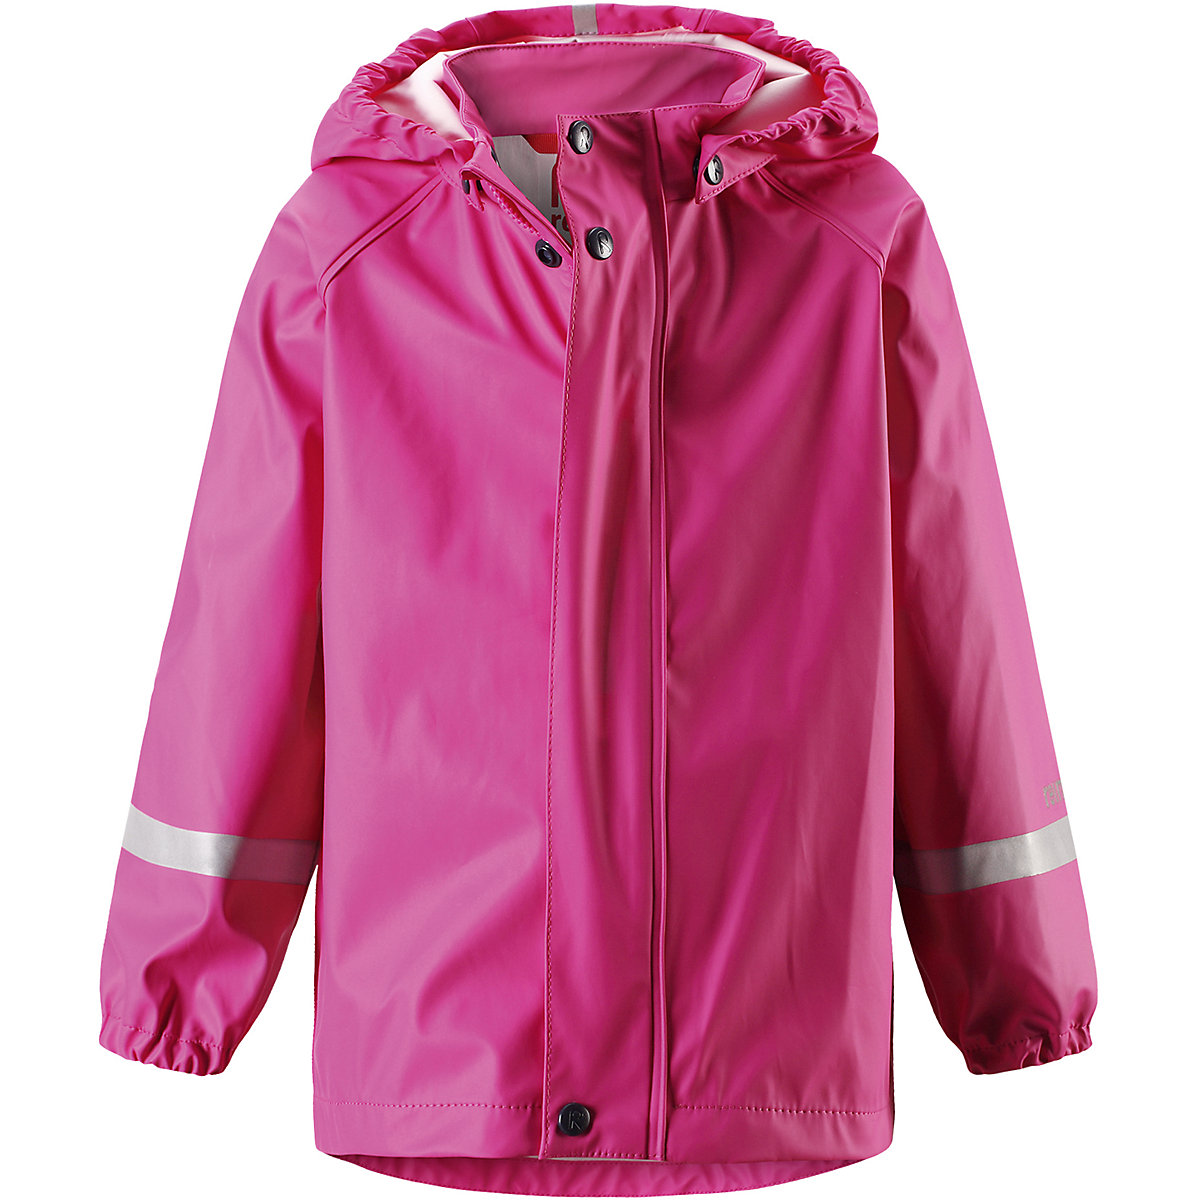 REIMA Jackets 8739550 For girls Polyester  winter fur baby clothing girl Jacket 2016 new kuiu guide dcs jacket hunting jackets sitka